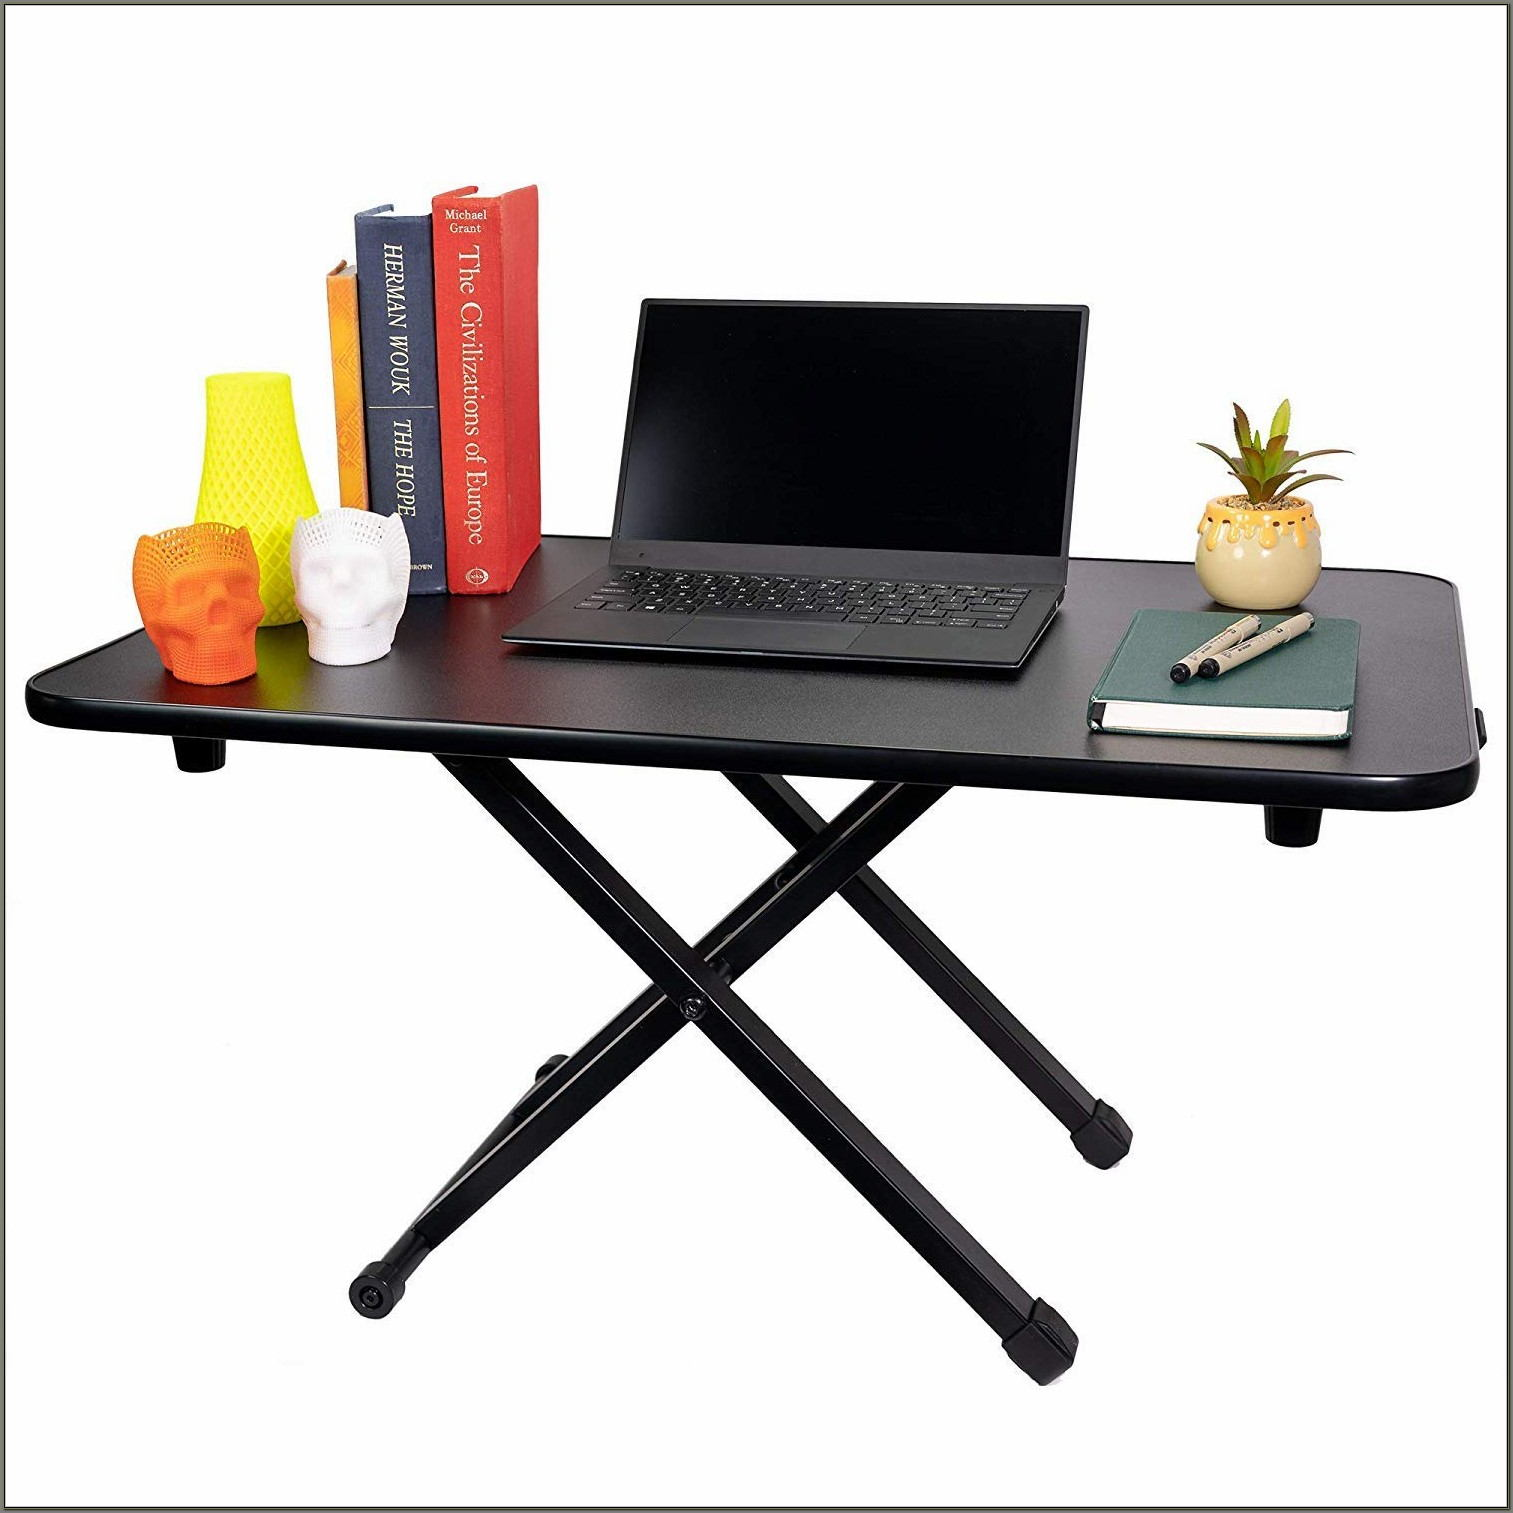 Adjustable Height Desk Topper